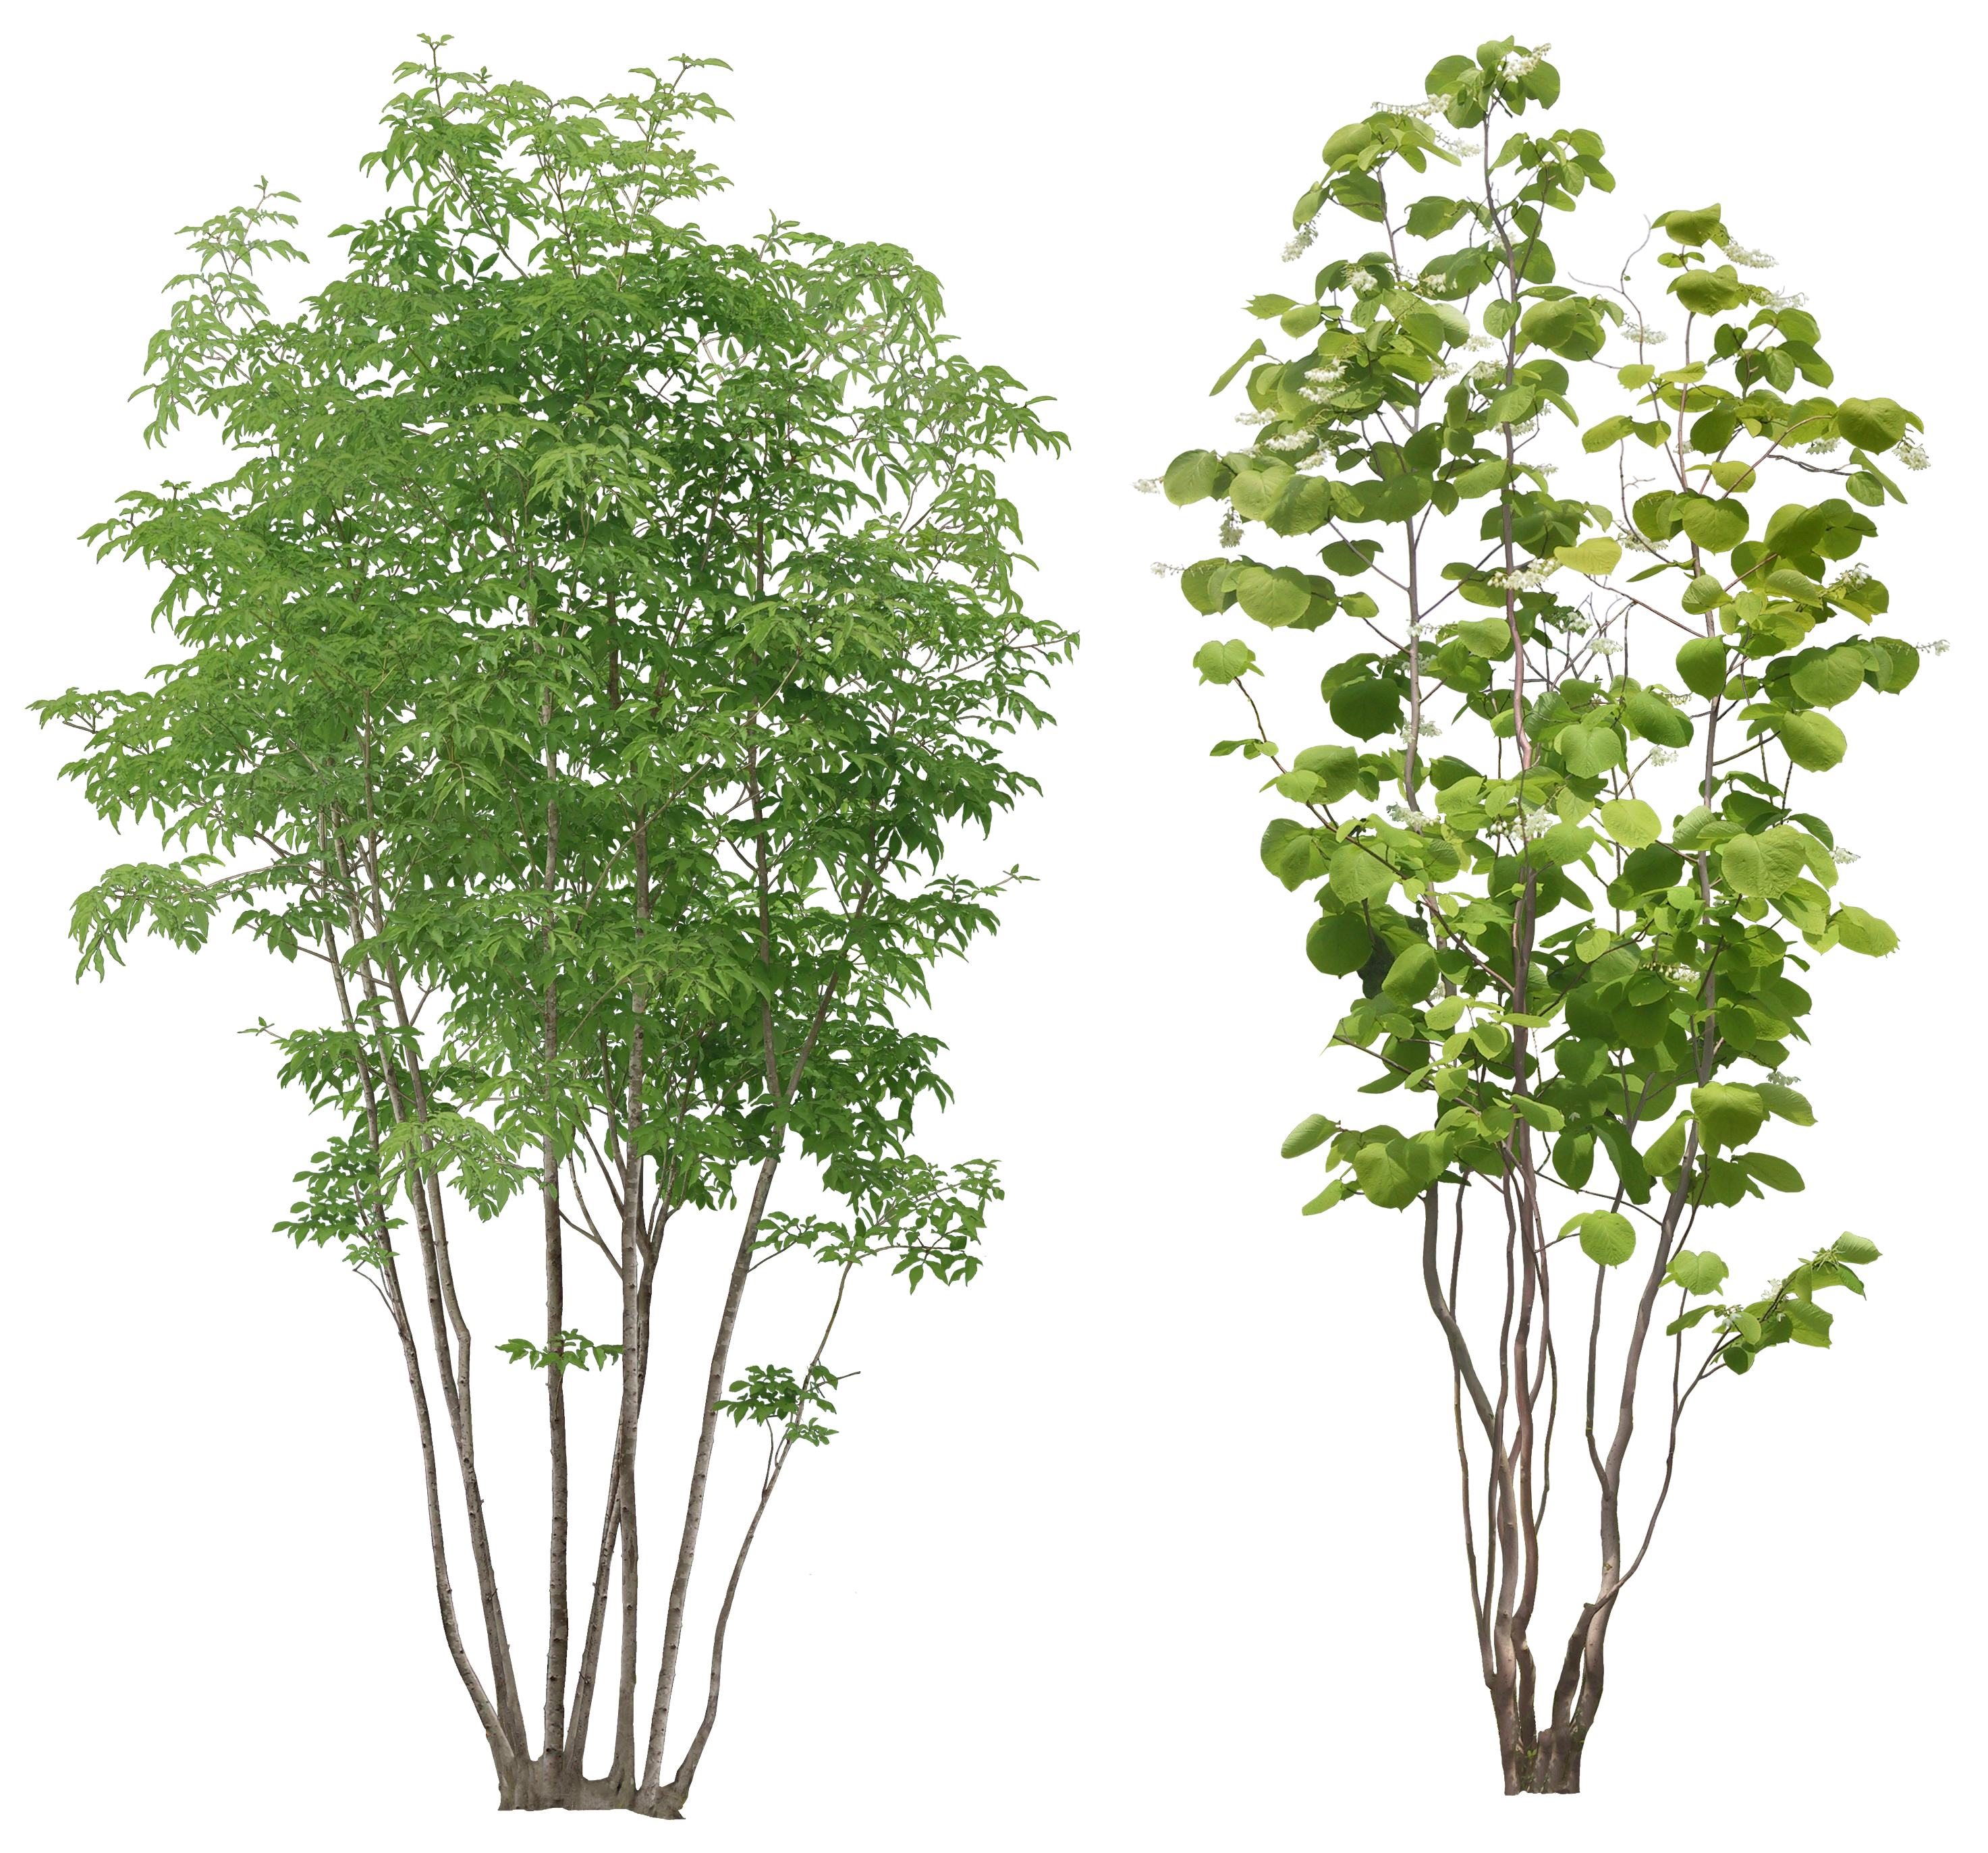 Tree Png Image - Plants PNG - Plant PNG HD